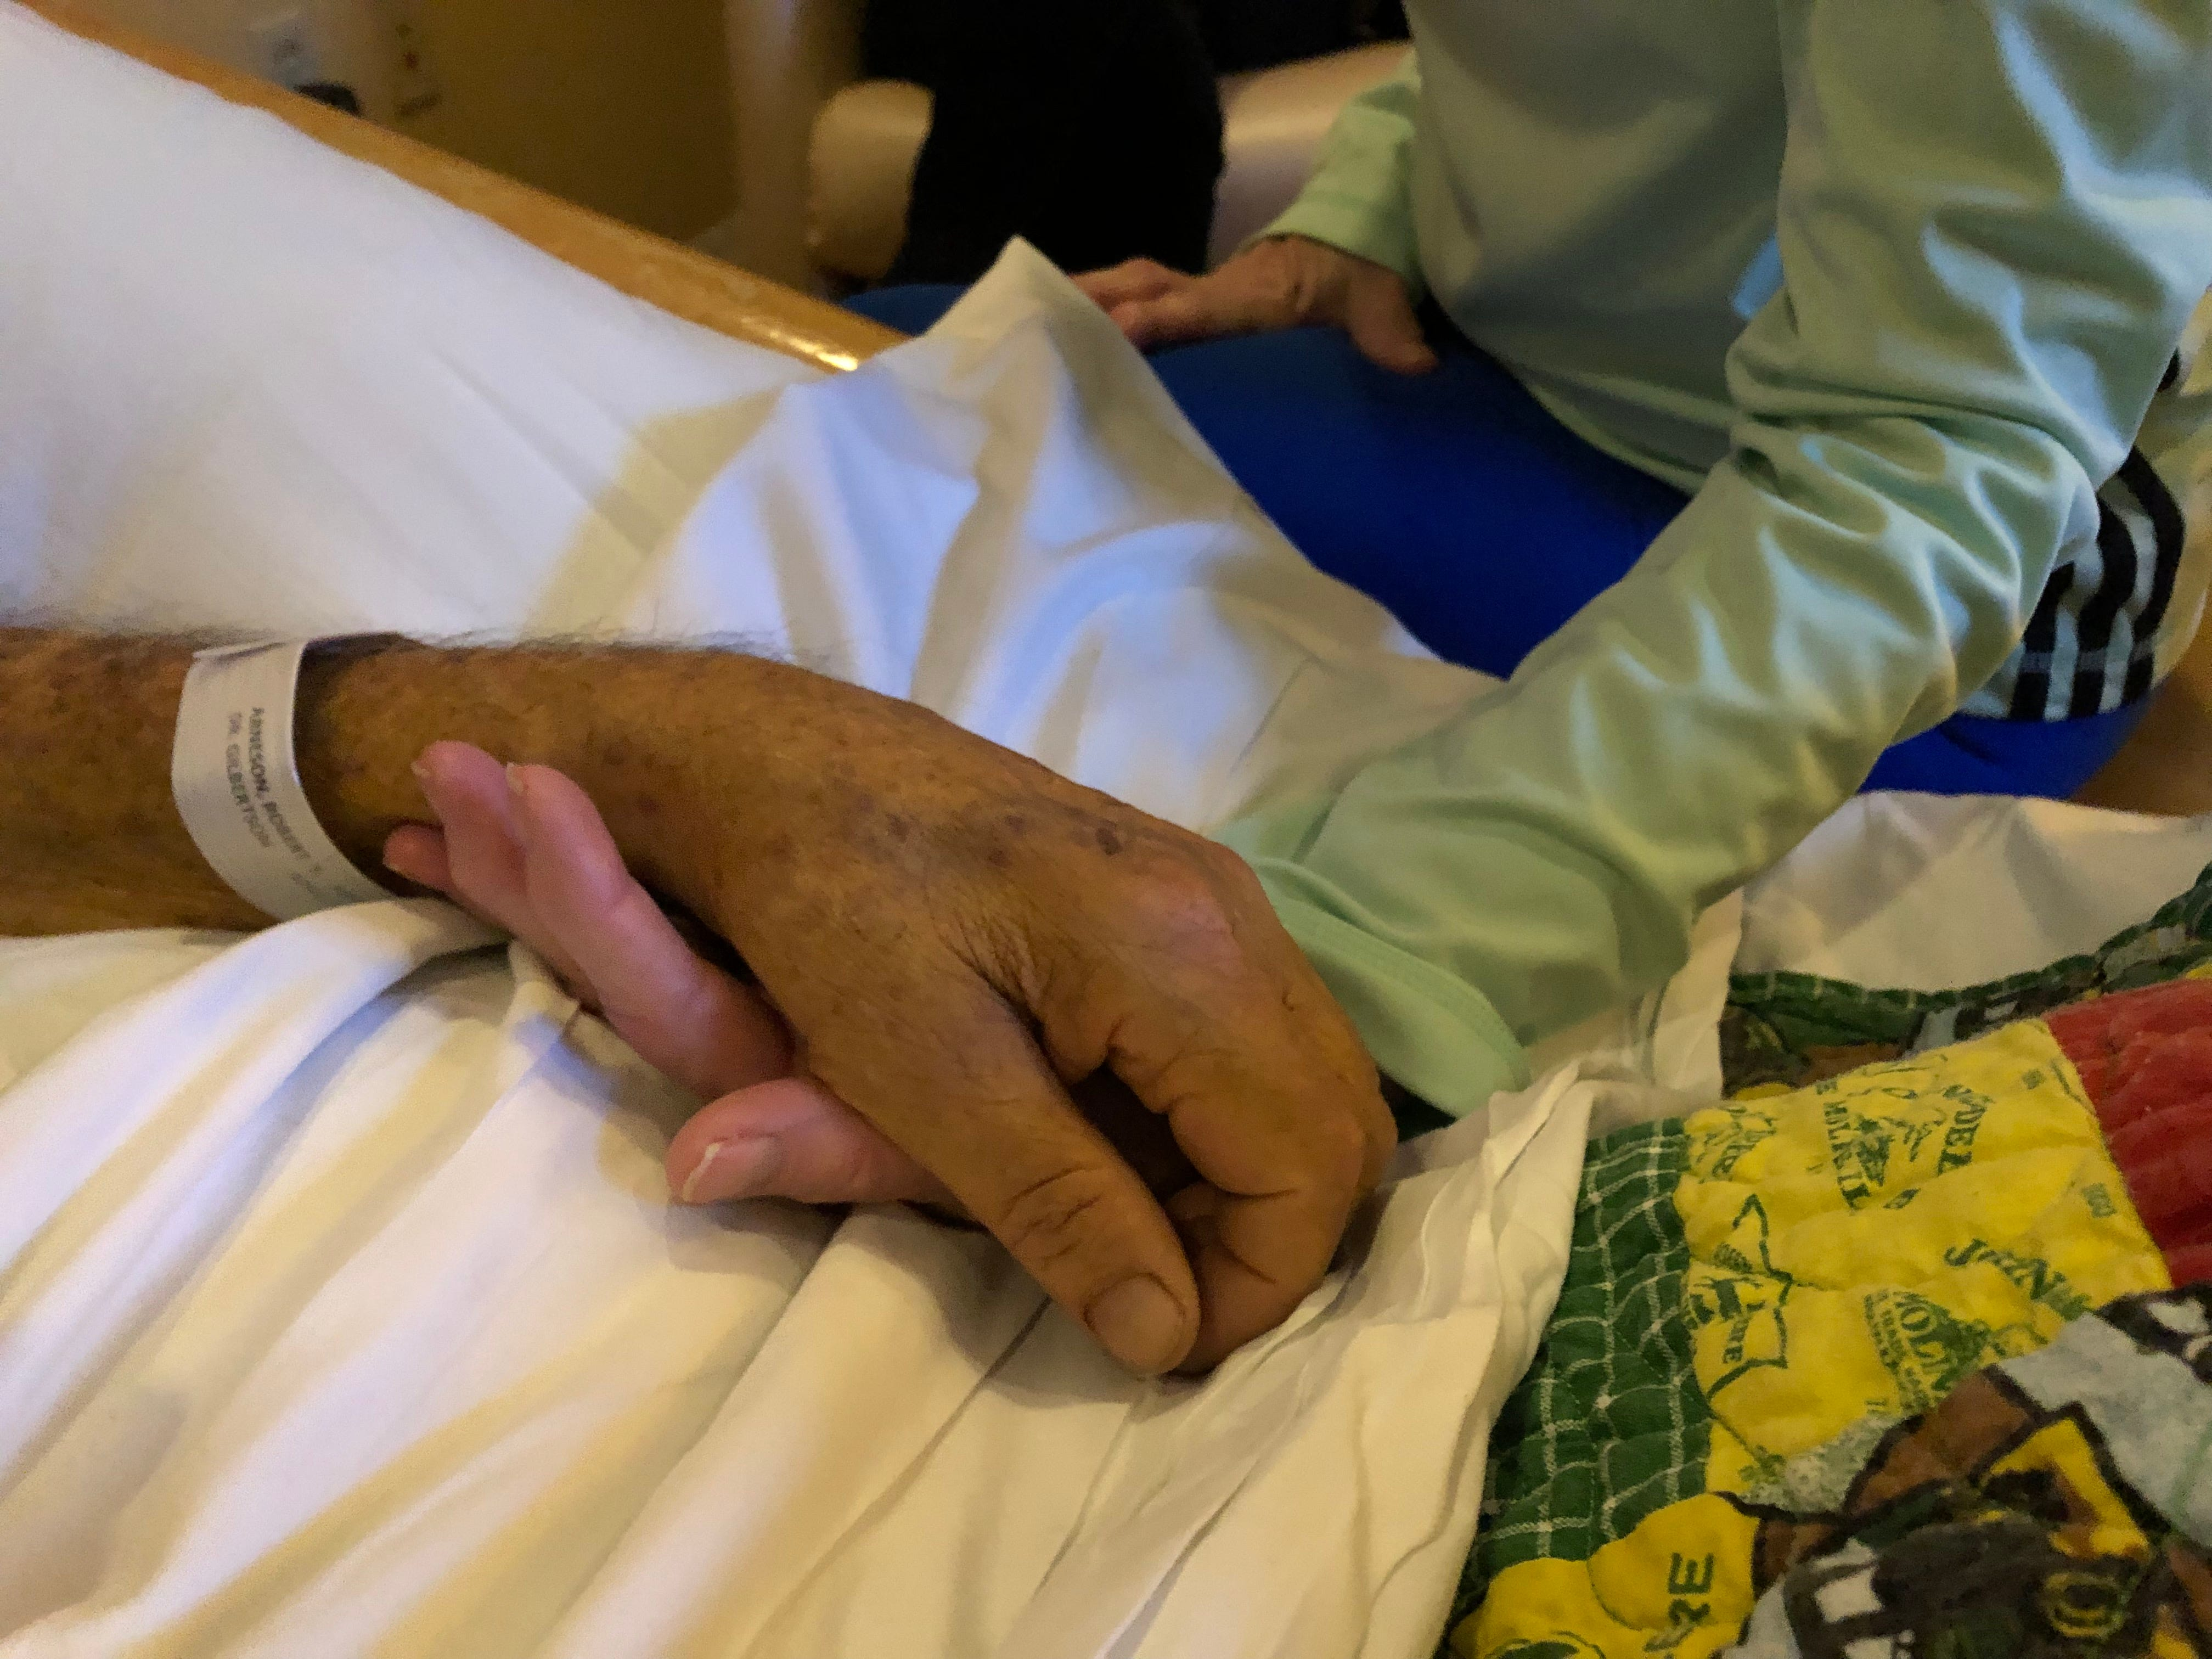 Jeannie Crotty, who's volunteered as an 11th Hour Companion for about four years, slips her hand under patient Robert Arneson's. Though Robert couldn't hear or see her, Jeannie swore she felt him squeeze her hand.